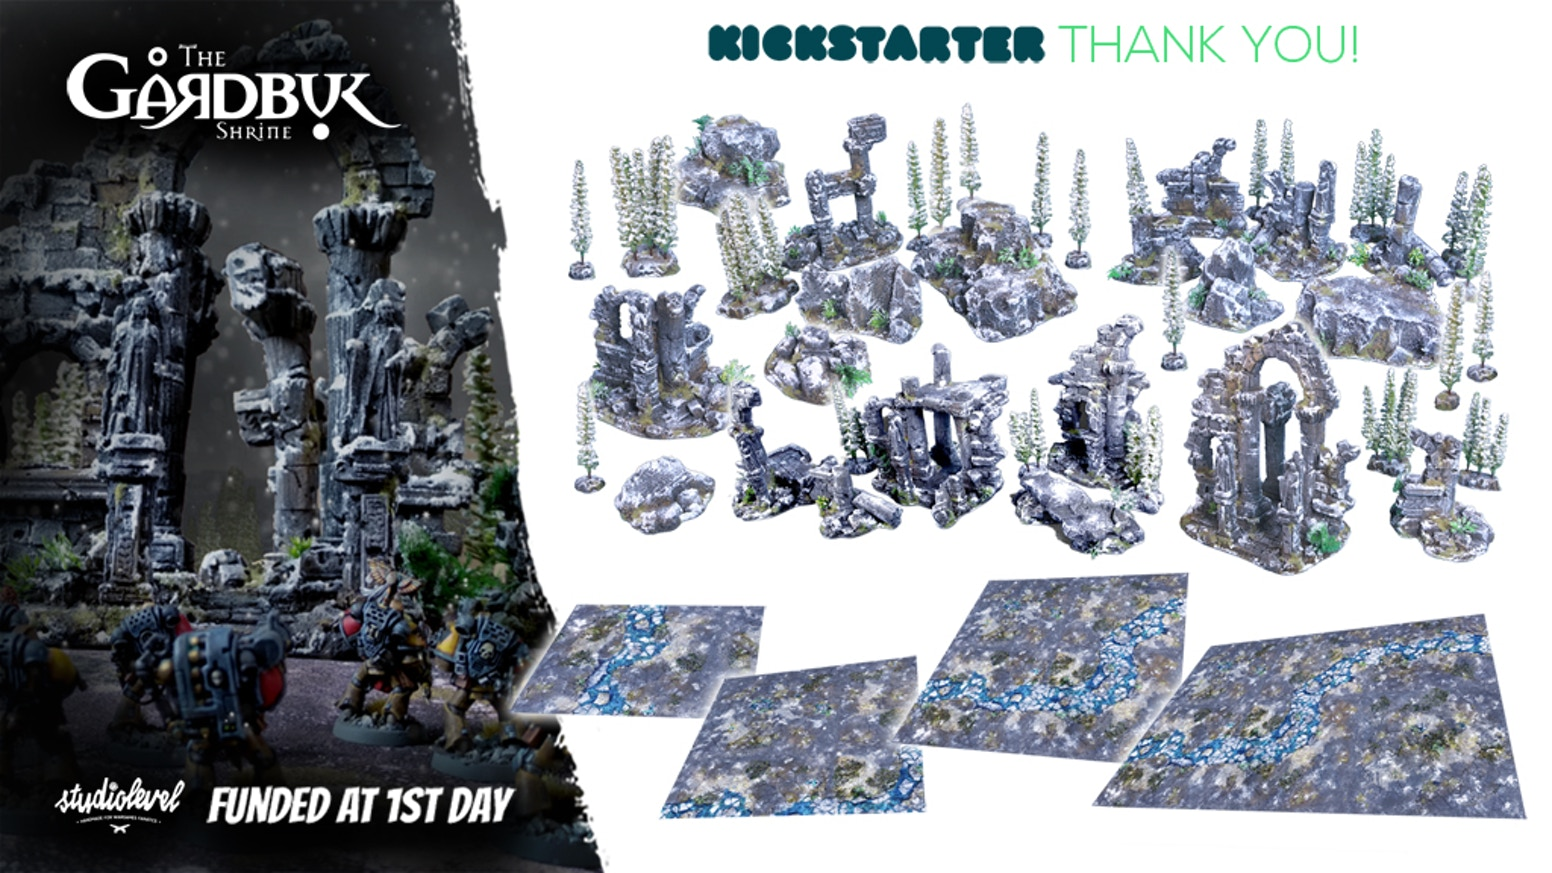 Build your dream wargaming, kill team board. Printed game mats & fully painted, handmade temple terrain. Join us today!